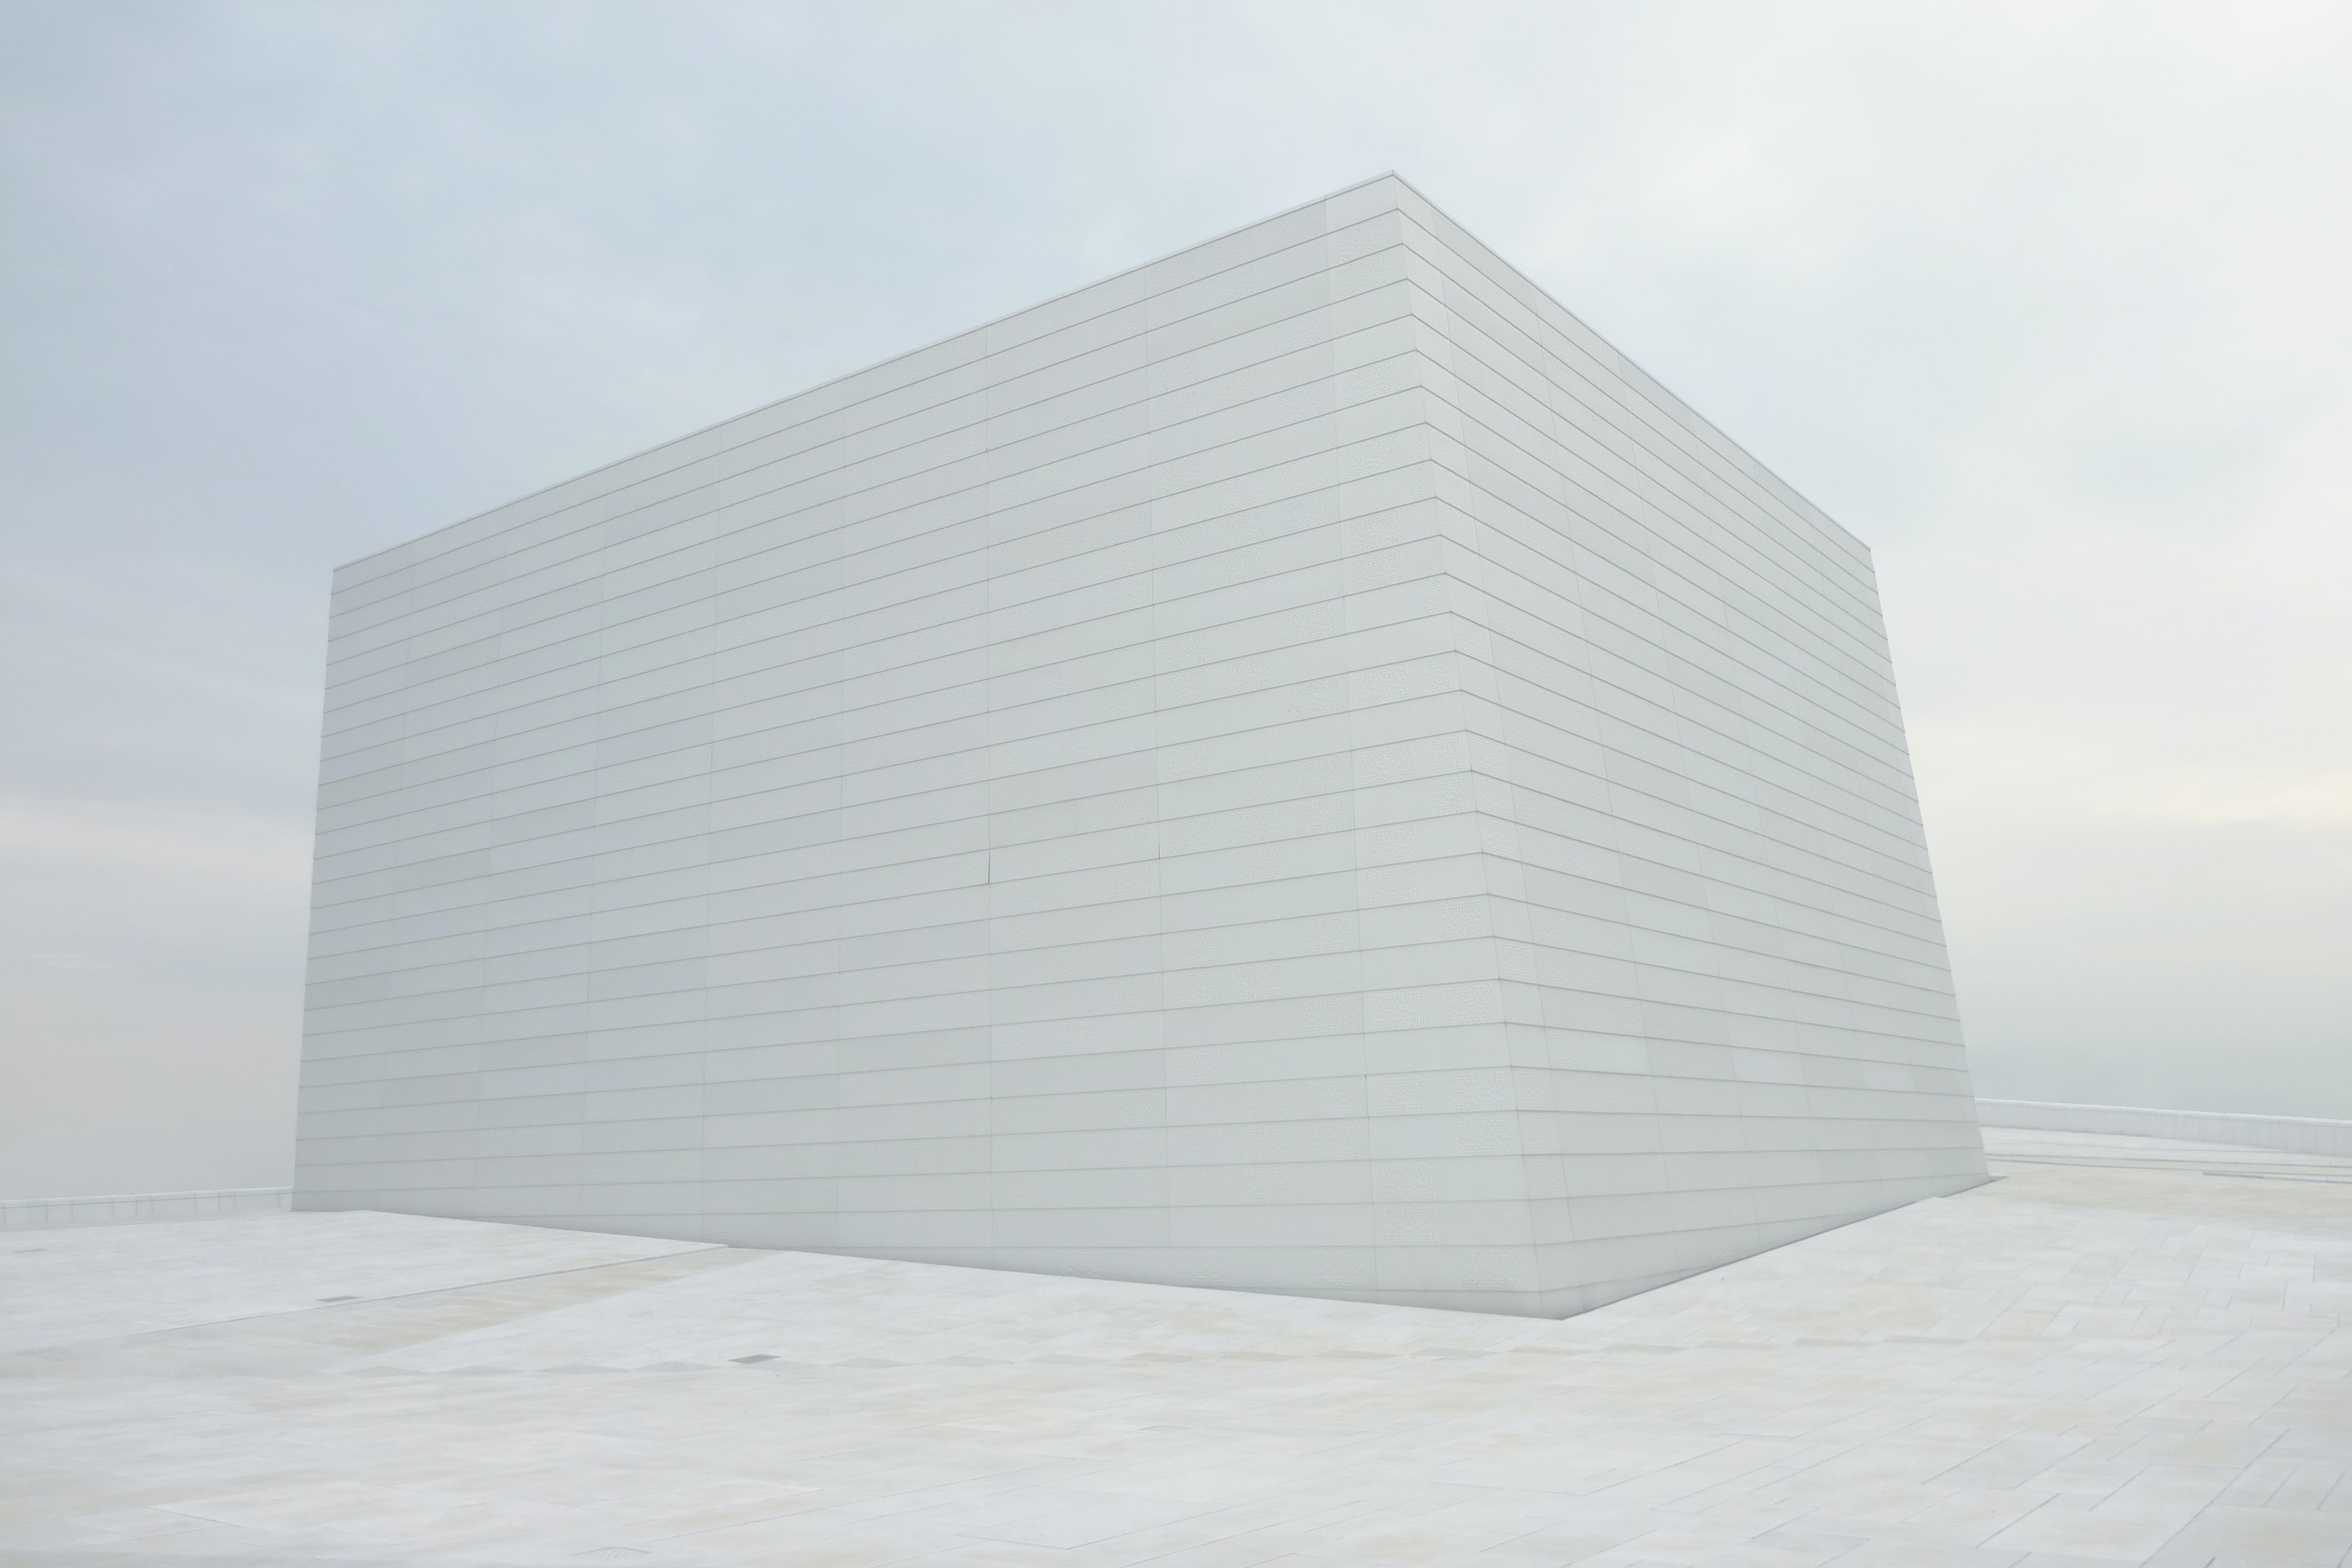 white building on snow field